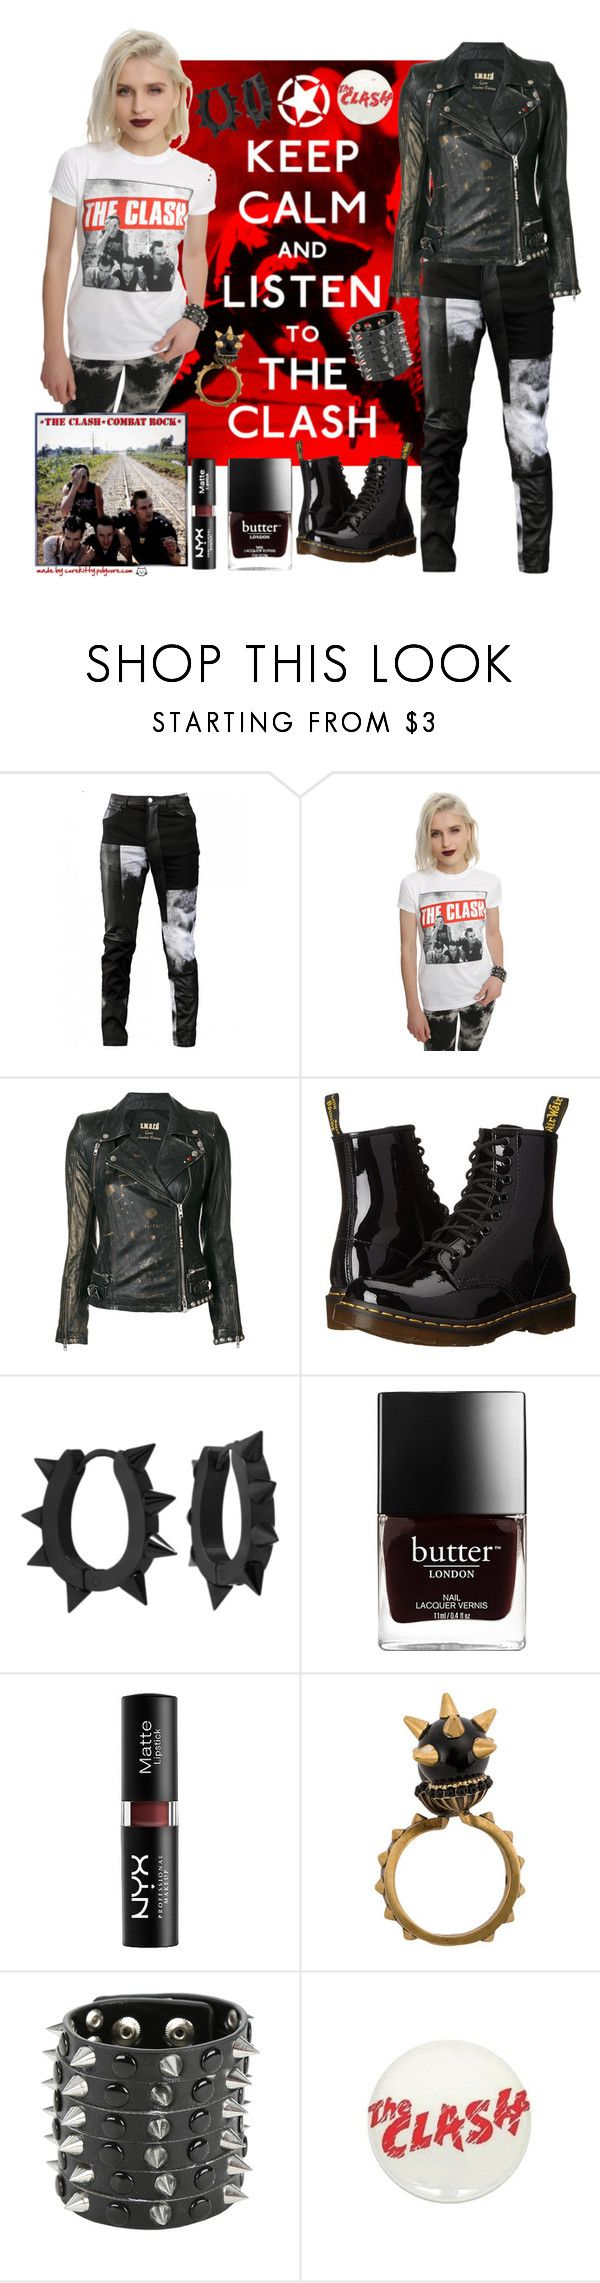 """The Clash: Combat Rock!"" by curekitty ❤ liked on Polyvore featuring Any Old Iron, s.w.o.r.d 6.6.44, Dr. Martens, West Coast Jewelry, NYX, Gucci and Hot Topic"